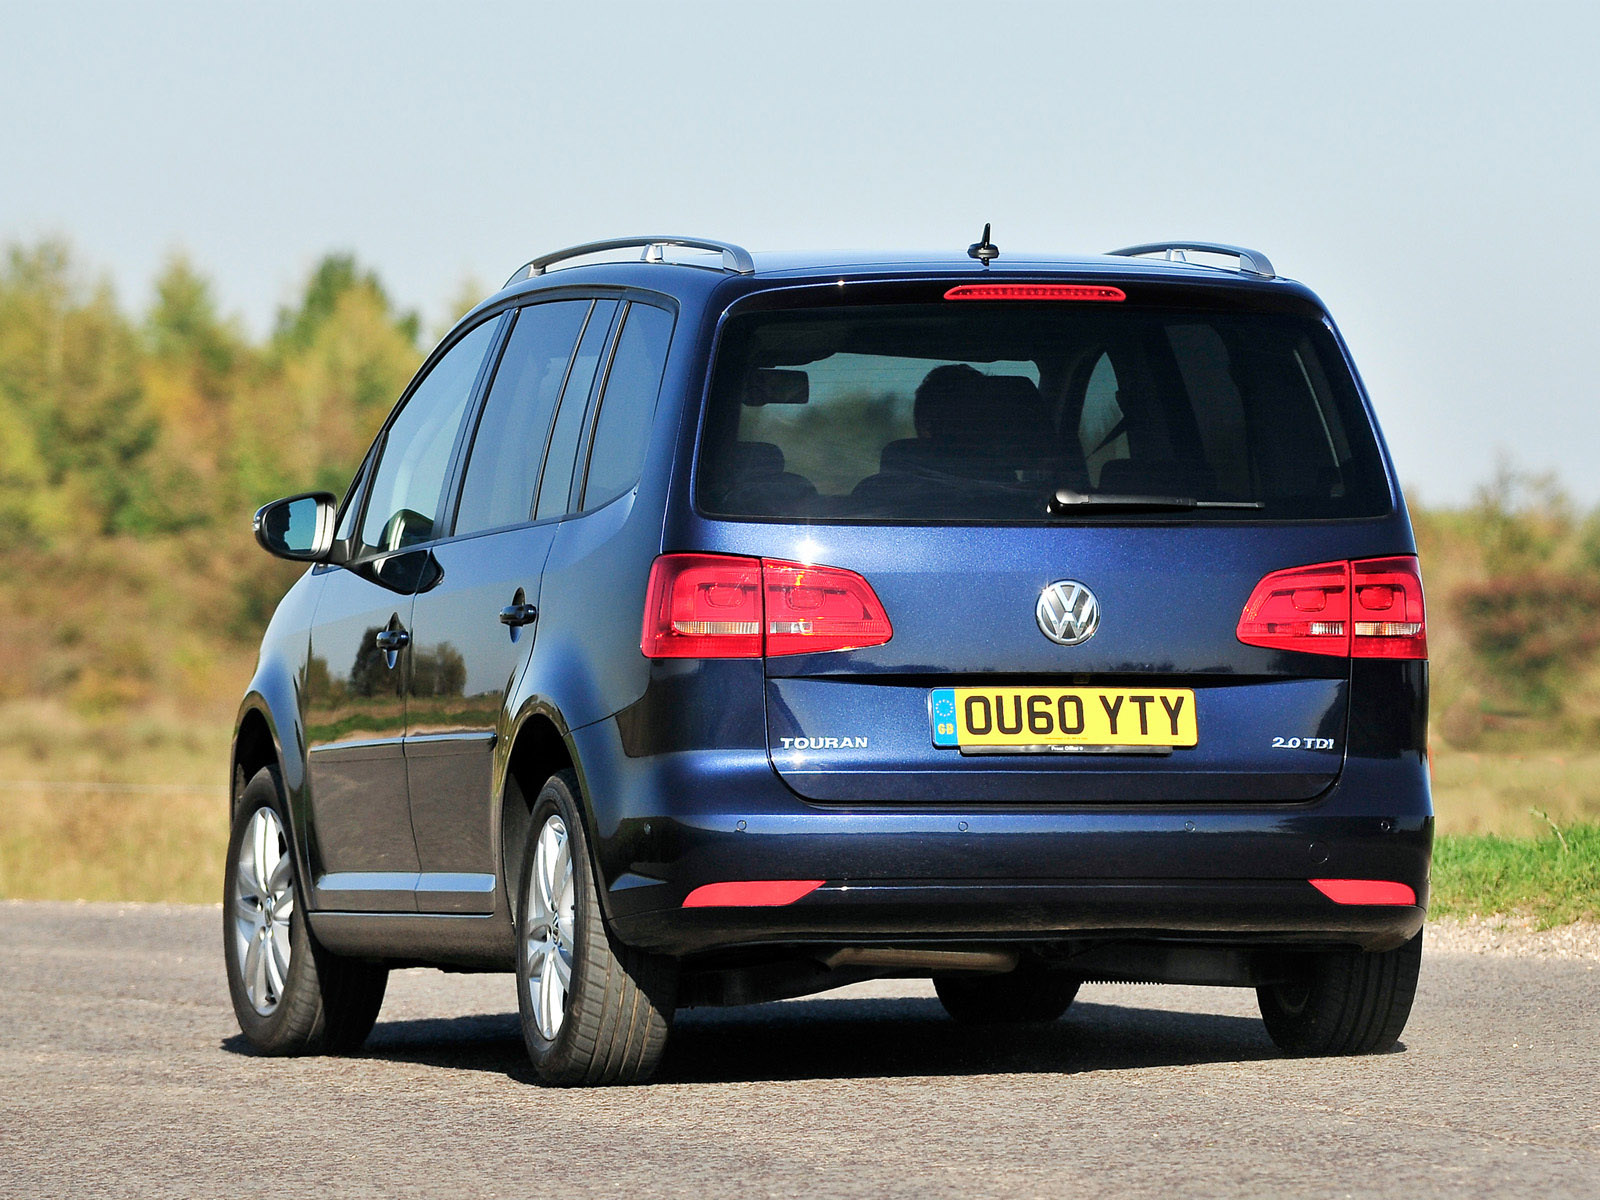 volkswagen touran uk 2010 volkswagen touran uk 2010 photo 17 car in pictures car photo gallery. Black Bedroom Furniture Sets. Home Design Ideas